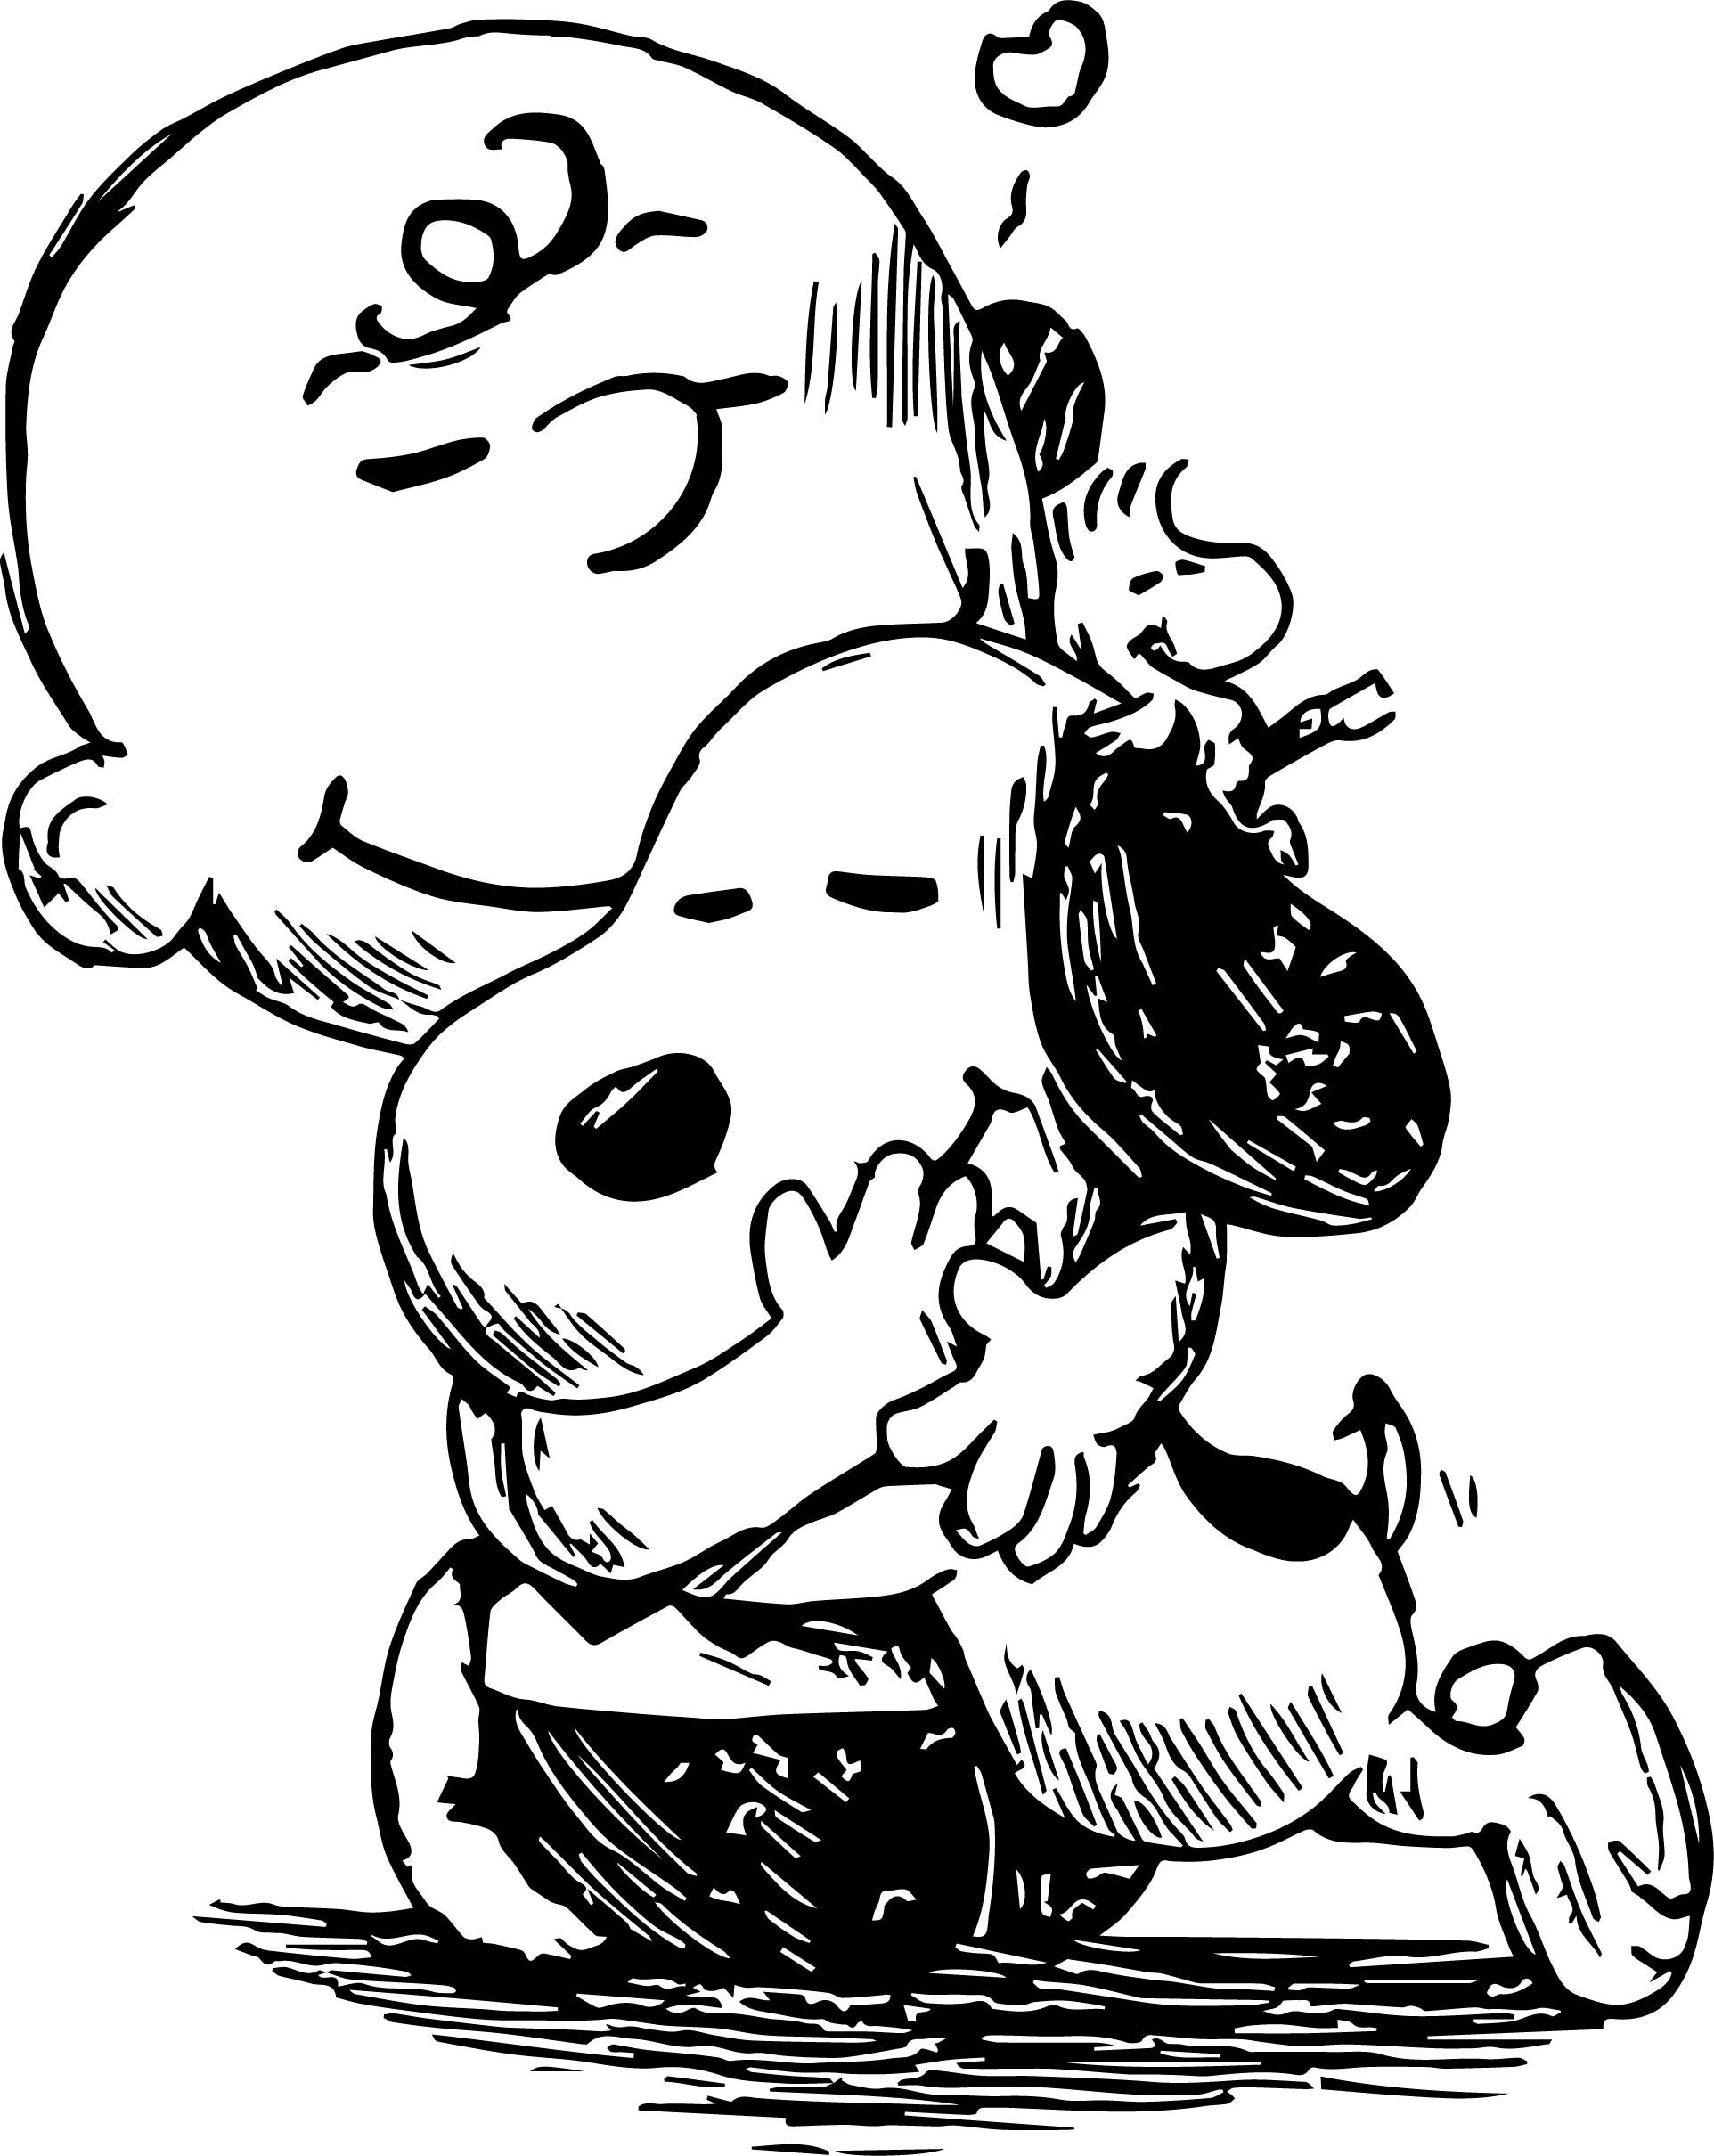 Free charlie brown valentine clipart coloring pages graphic black and white download nice Snoopy And Charlie Brown Black White Sketch Coloring Page ... graphic black and white download